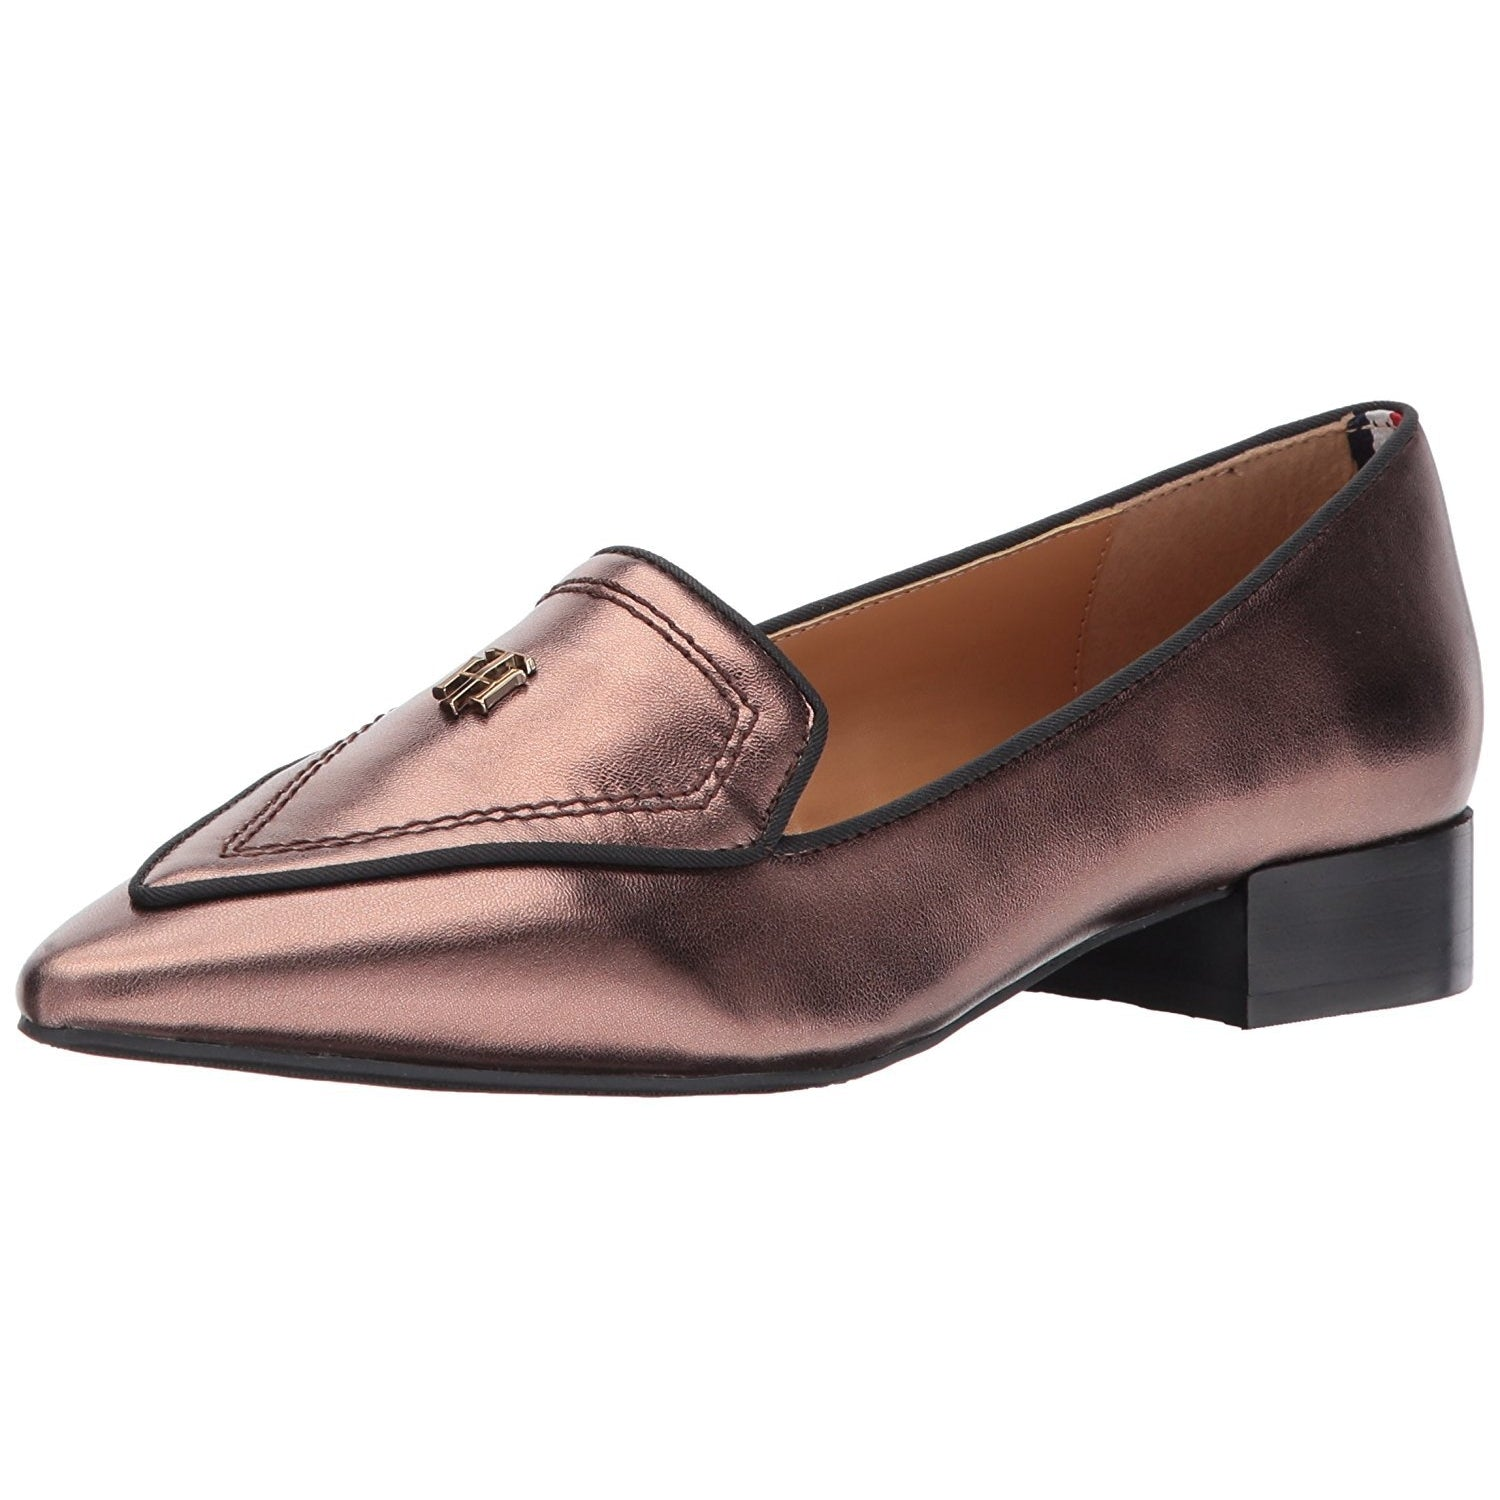 Tommy Hilfiger Women's Harvard Driving Style Loafer